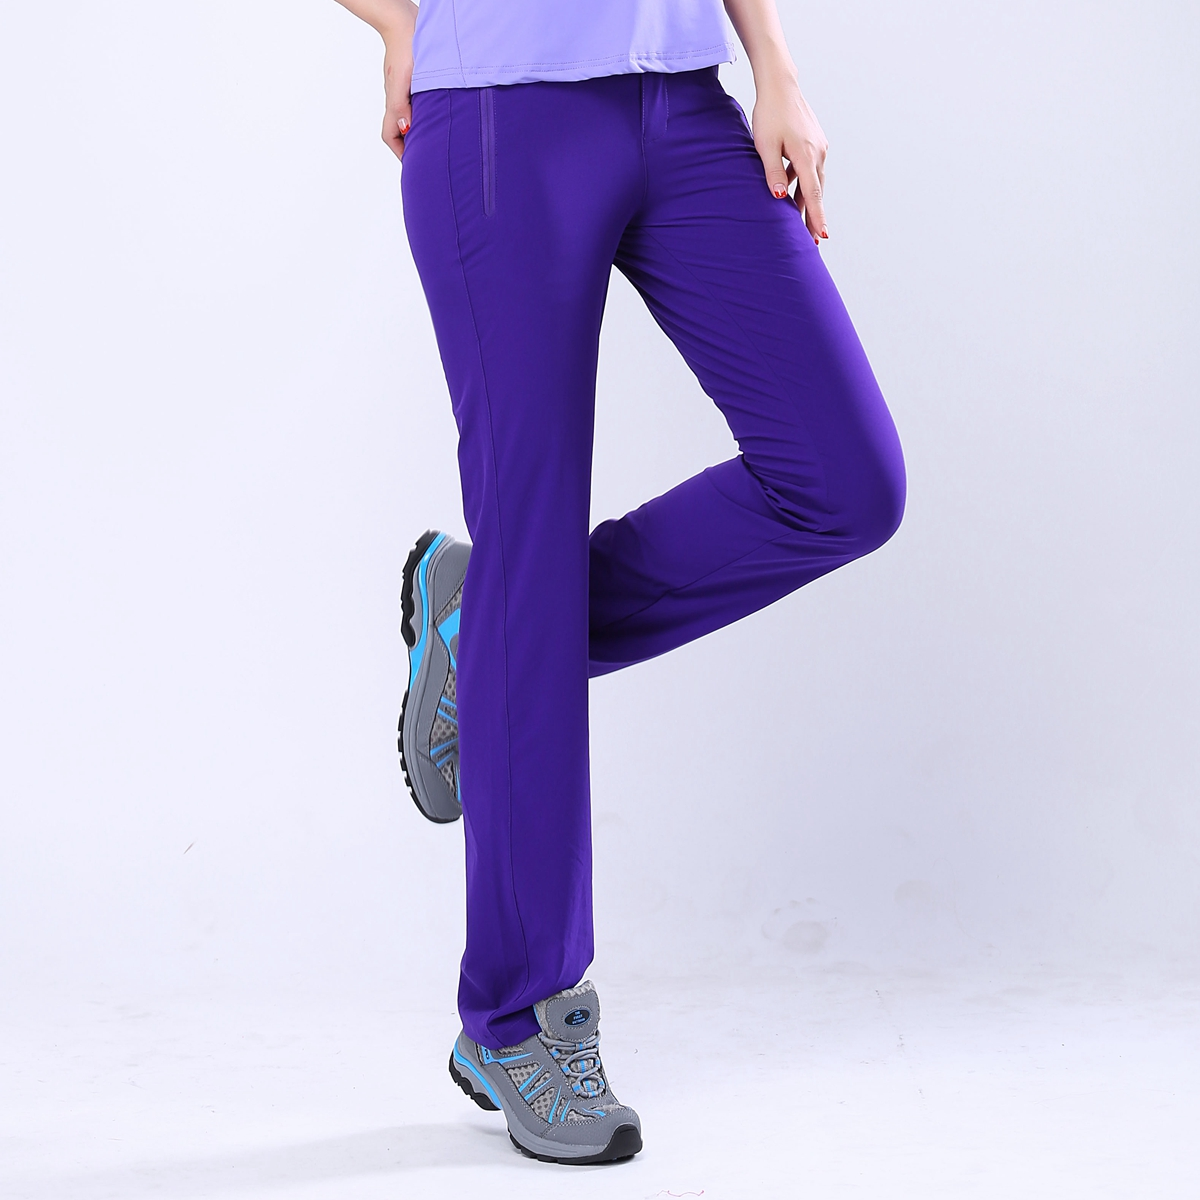 Spring and summer new quick drying pants sports quick drying ultra light pants wear-resistant outdoor womens pants